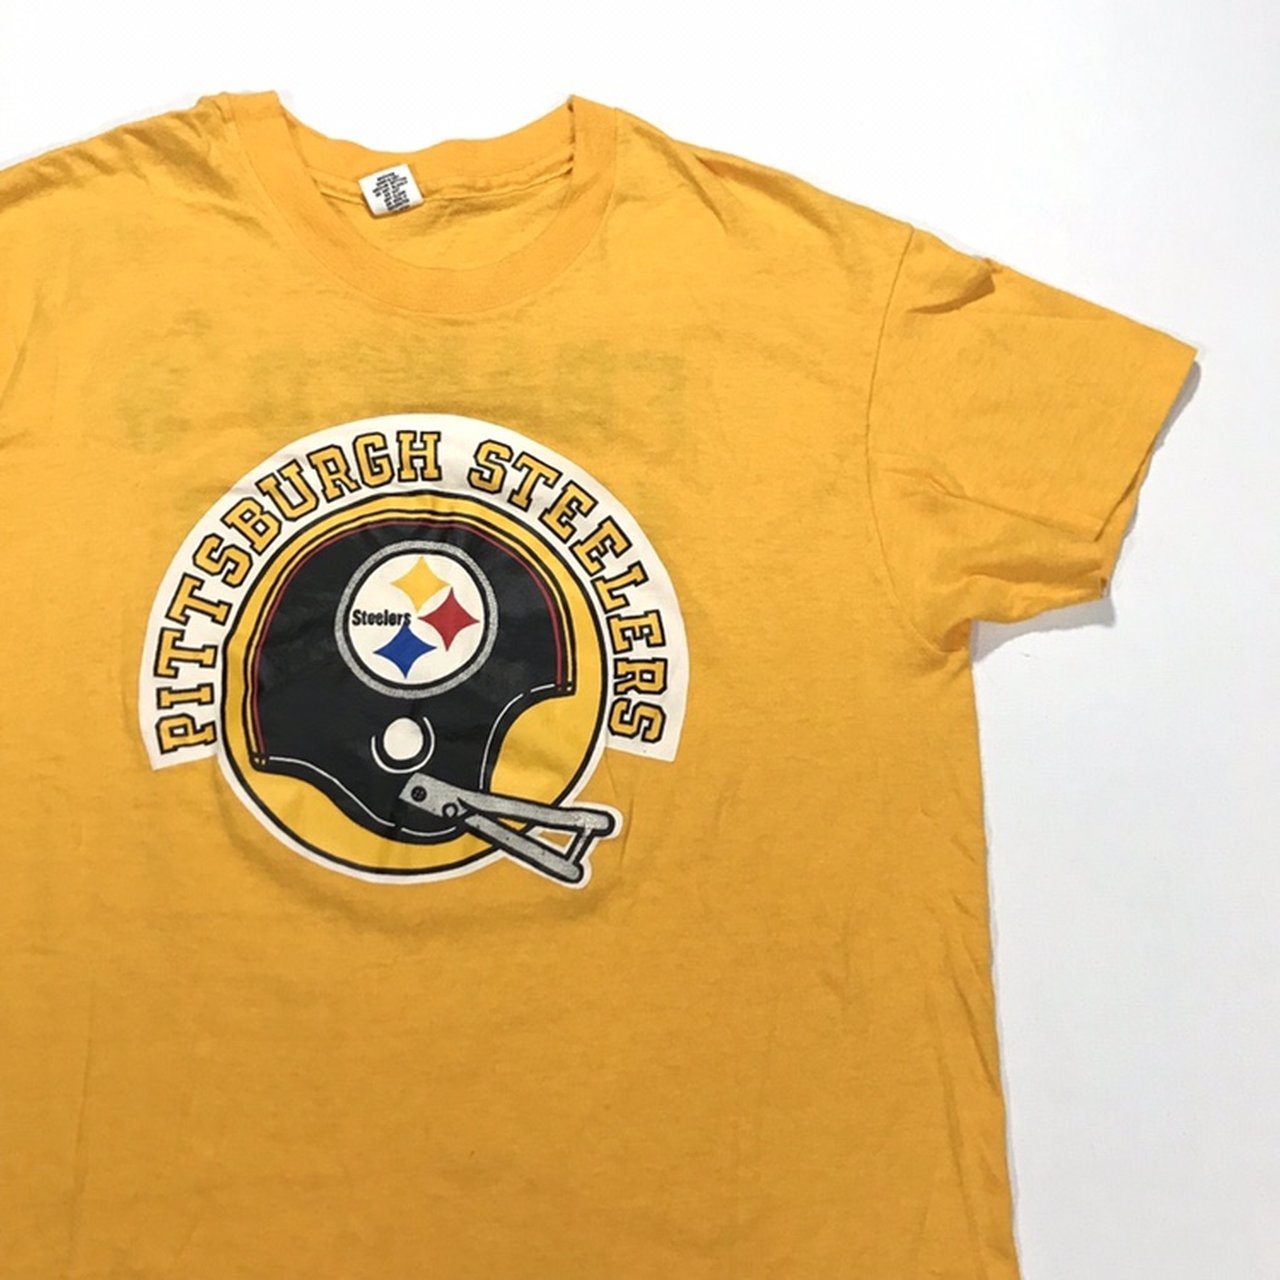 ca680e057 Vintage 70 s Pittsburgh Steelers shirt. Made in USA